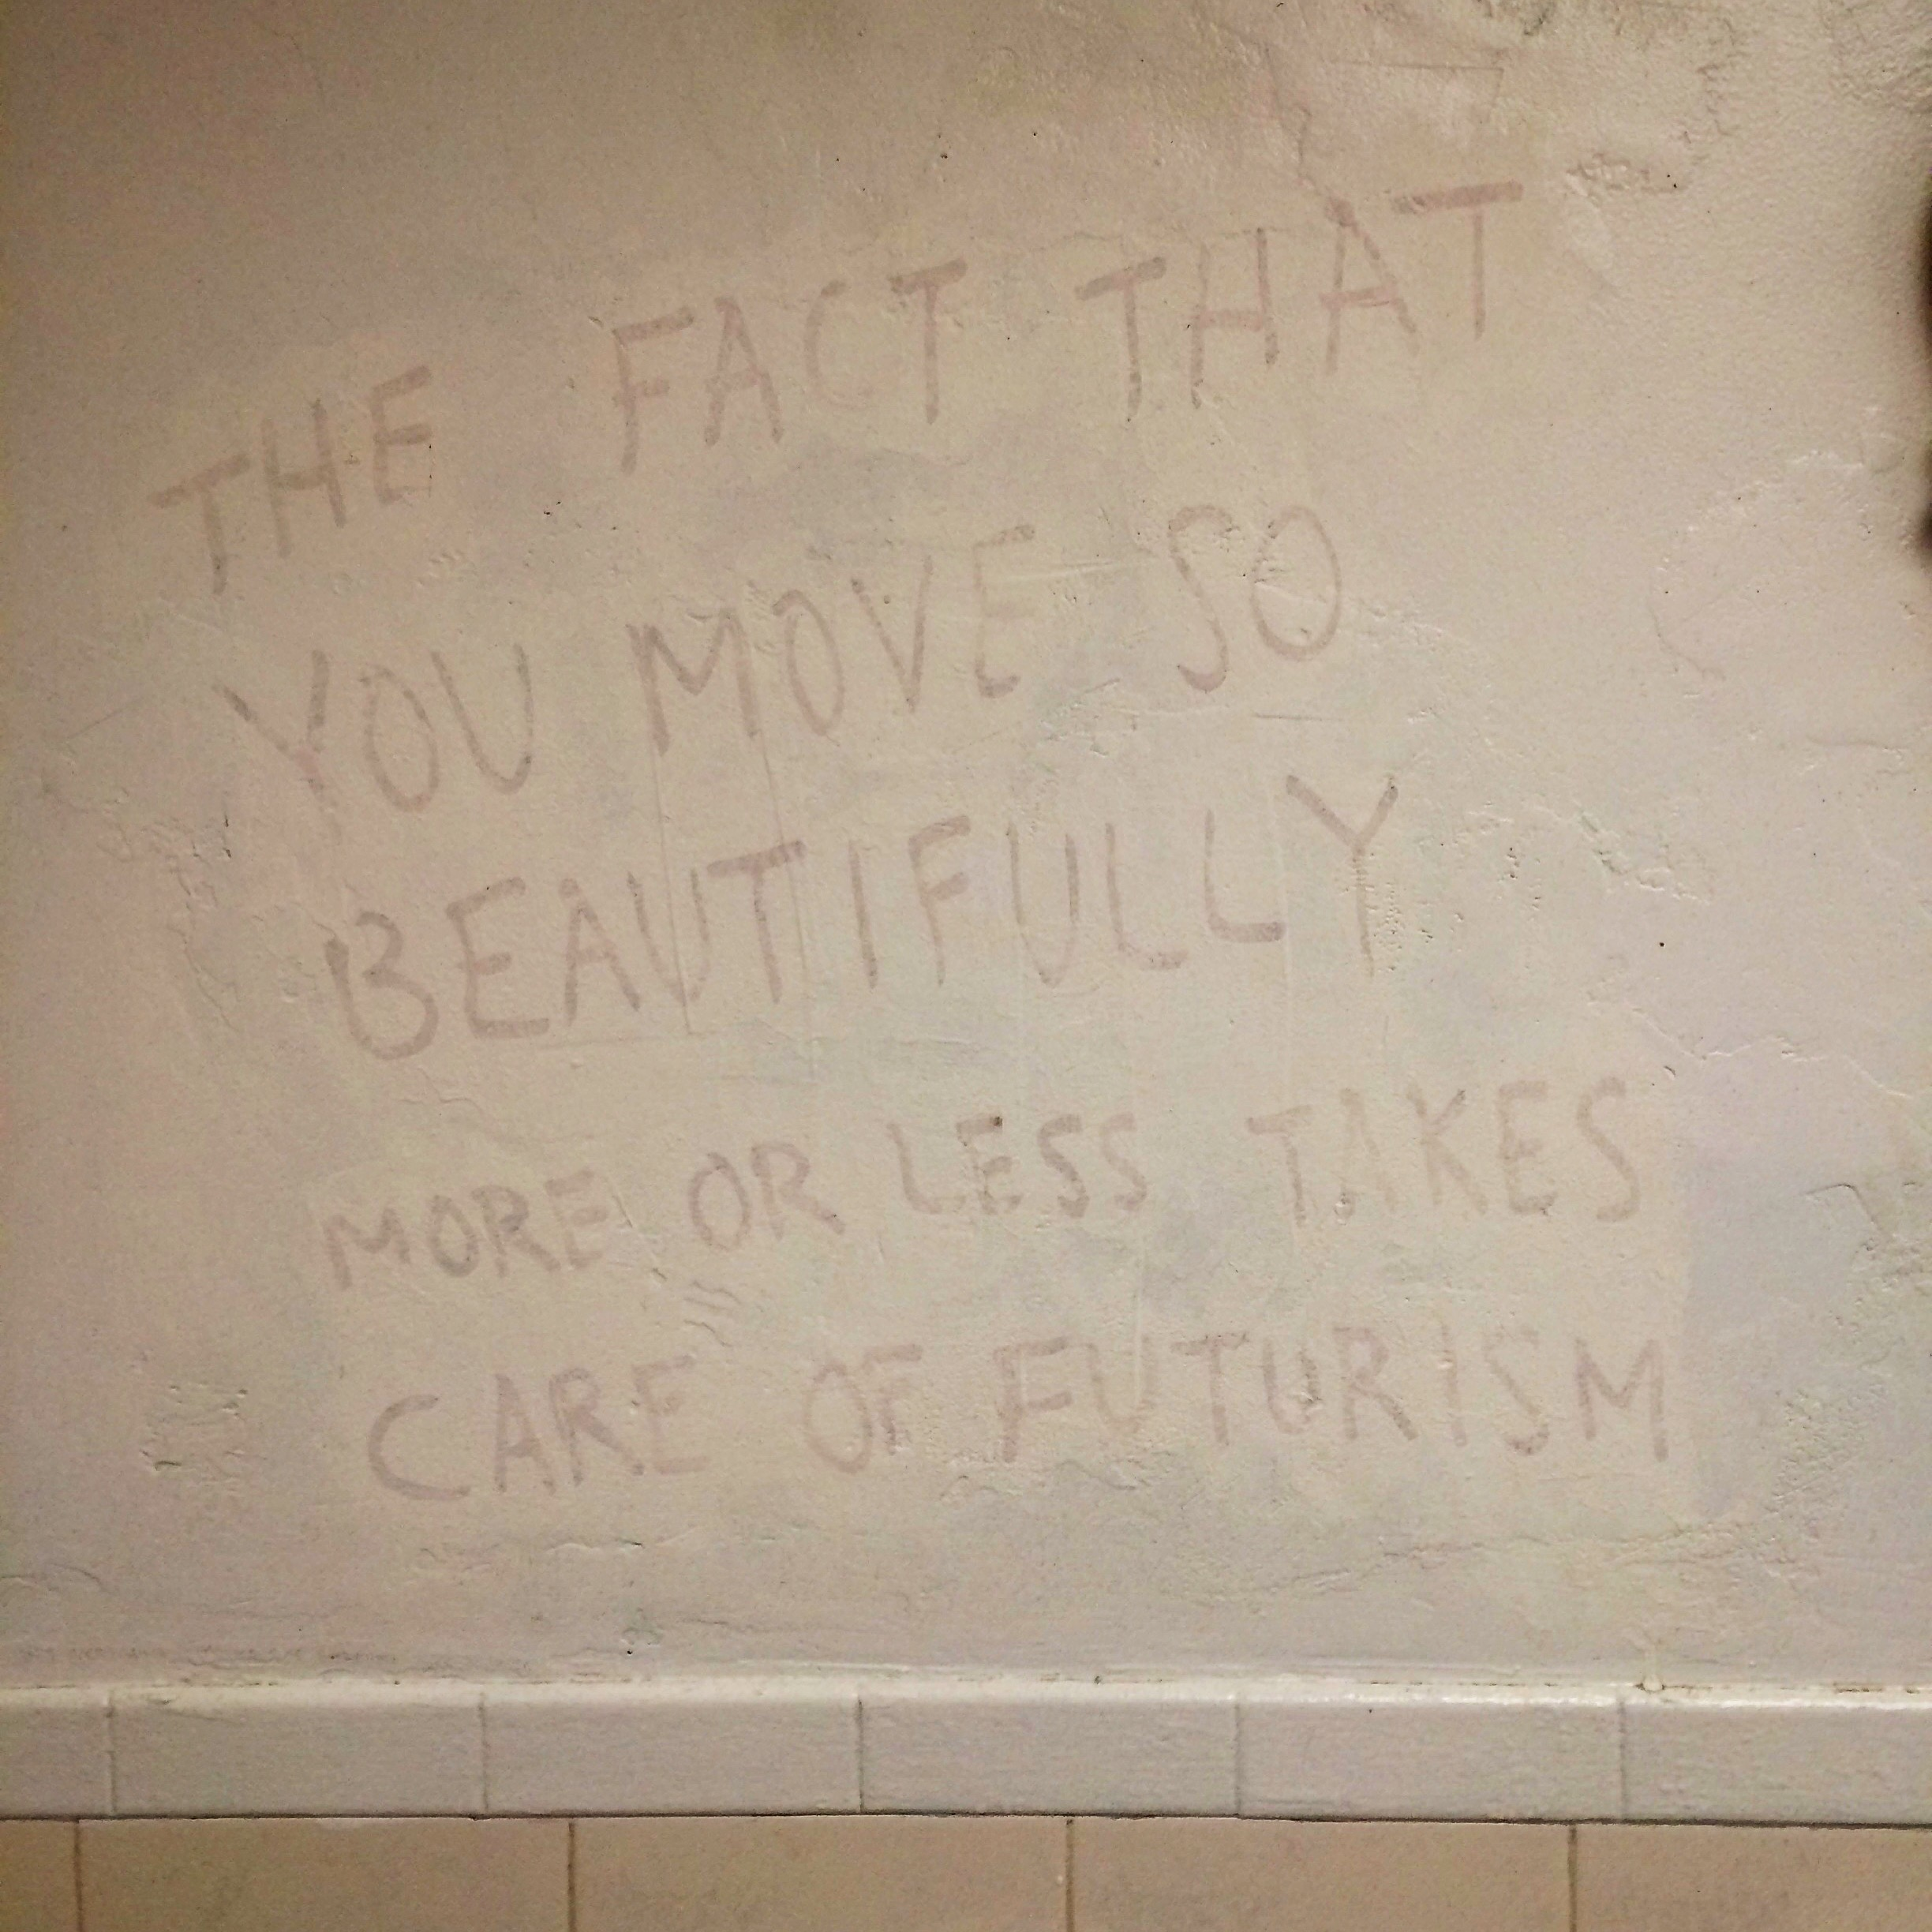 A quote on the wall of Caffe Paradiso in Champaign, IL: